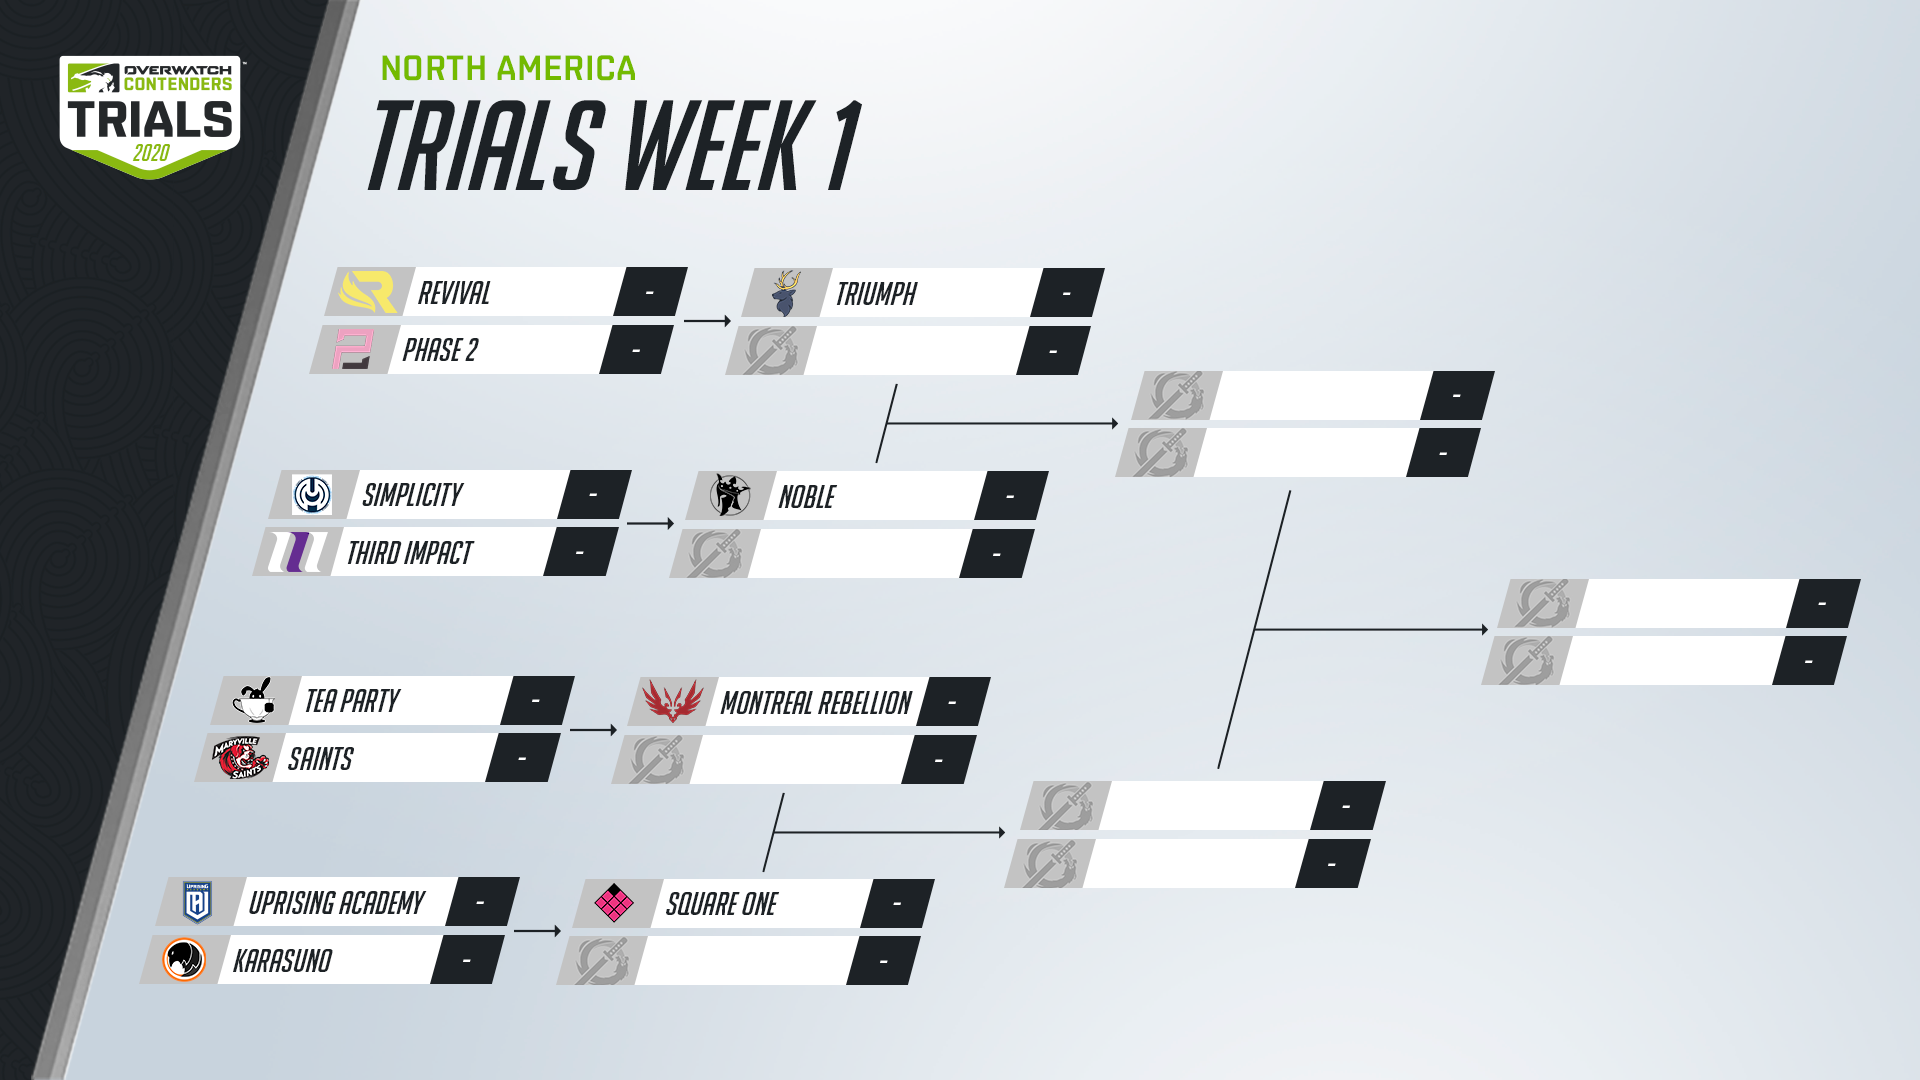 OW-Contenders_Brackets_Trials-NA-Wk1.png